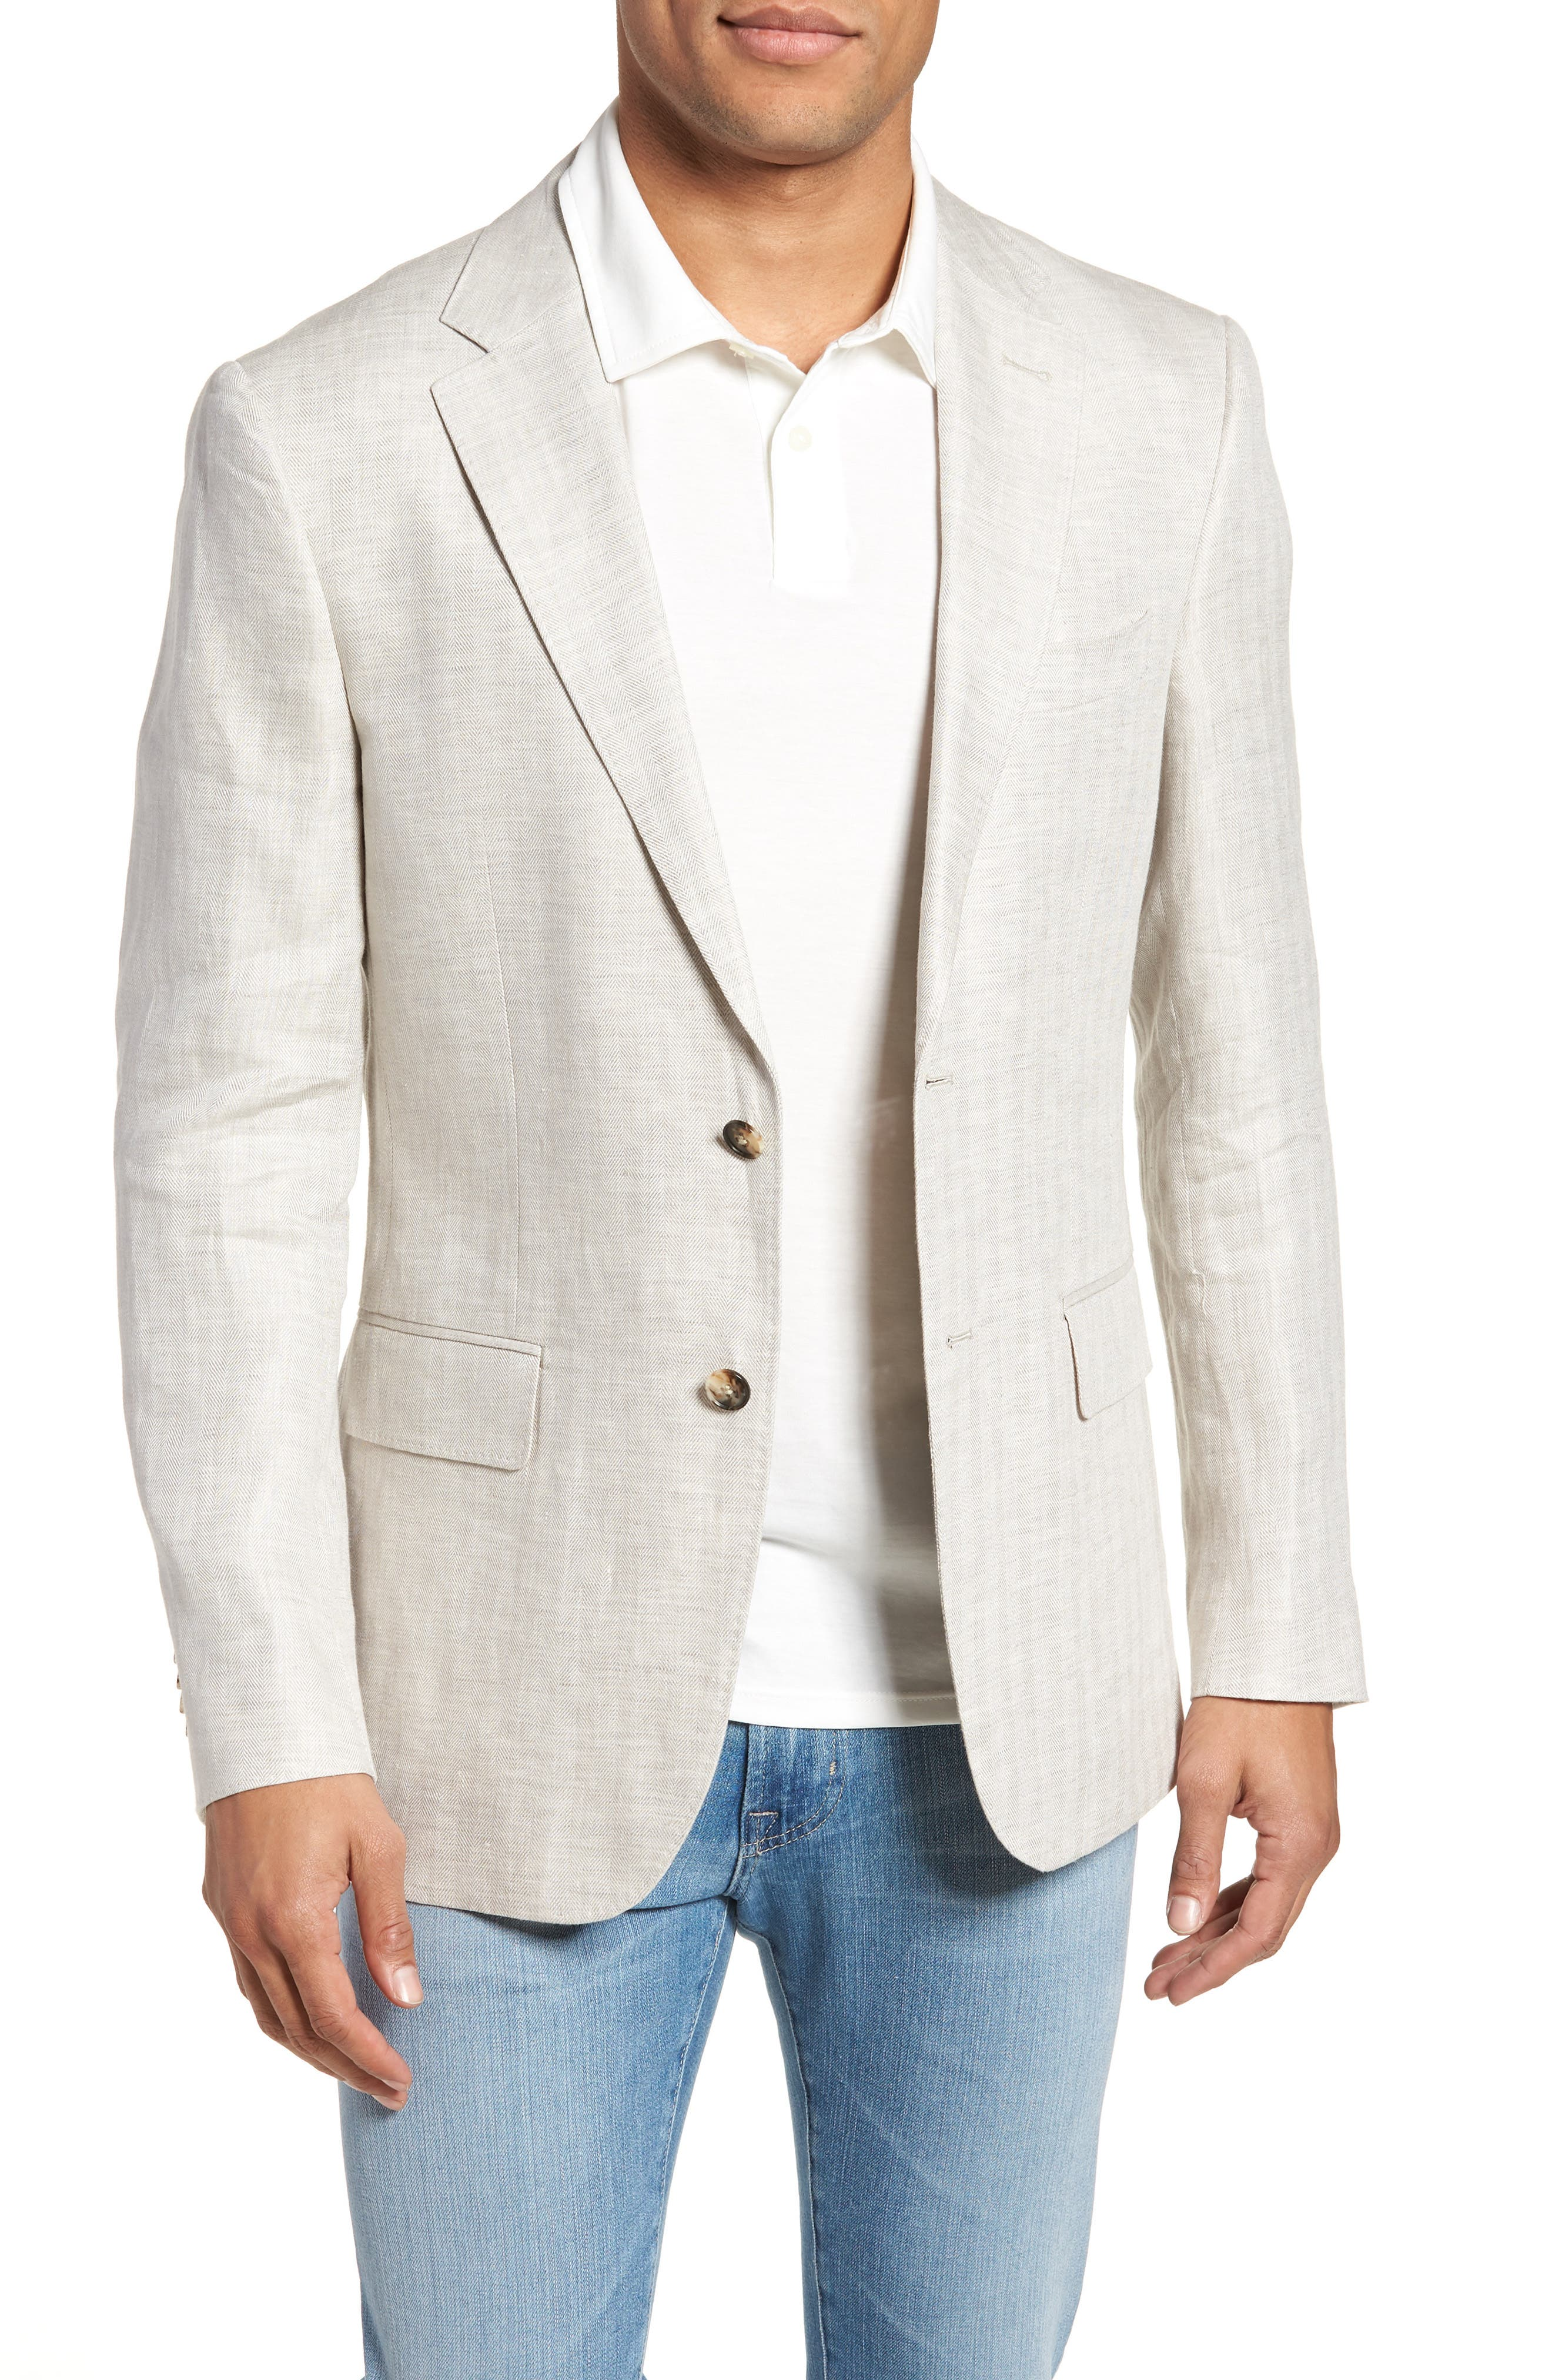 Benson Road Linen Sport Coat,                         Main,                         color, NATURAL